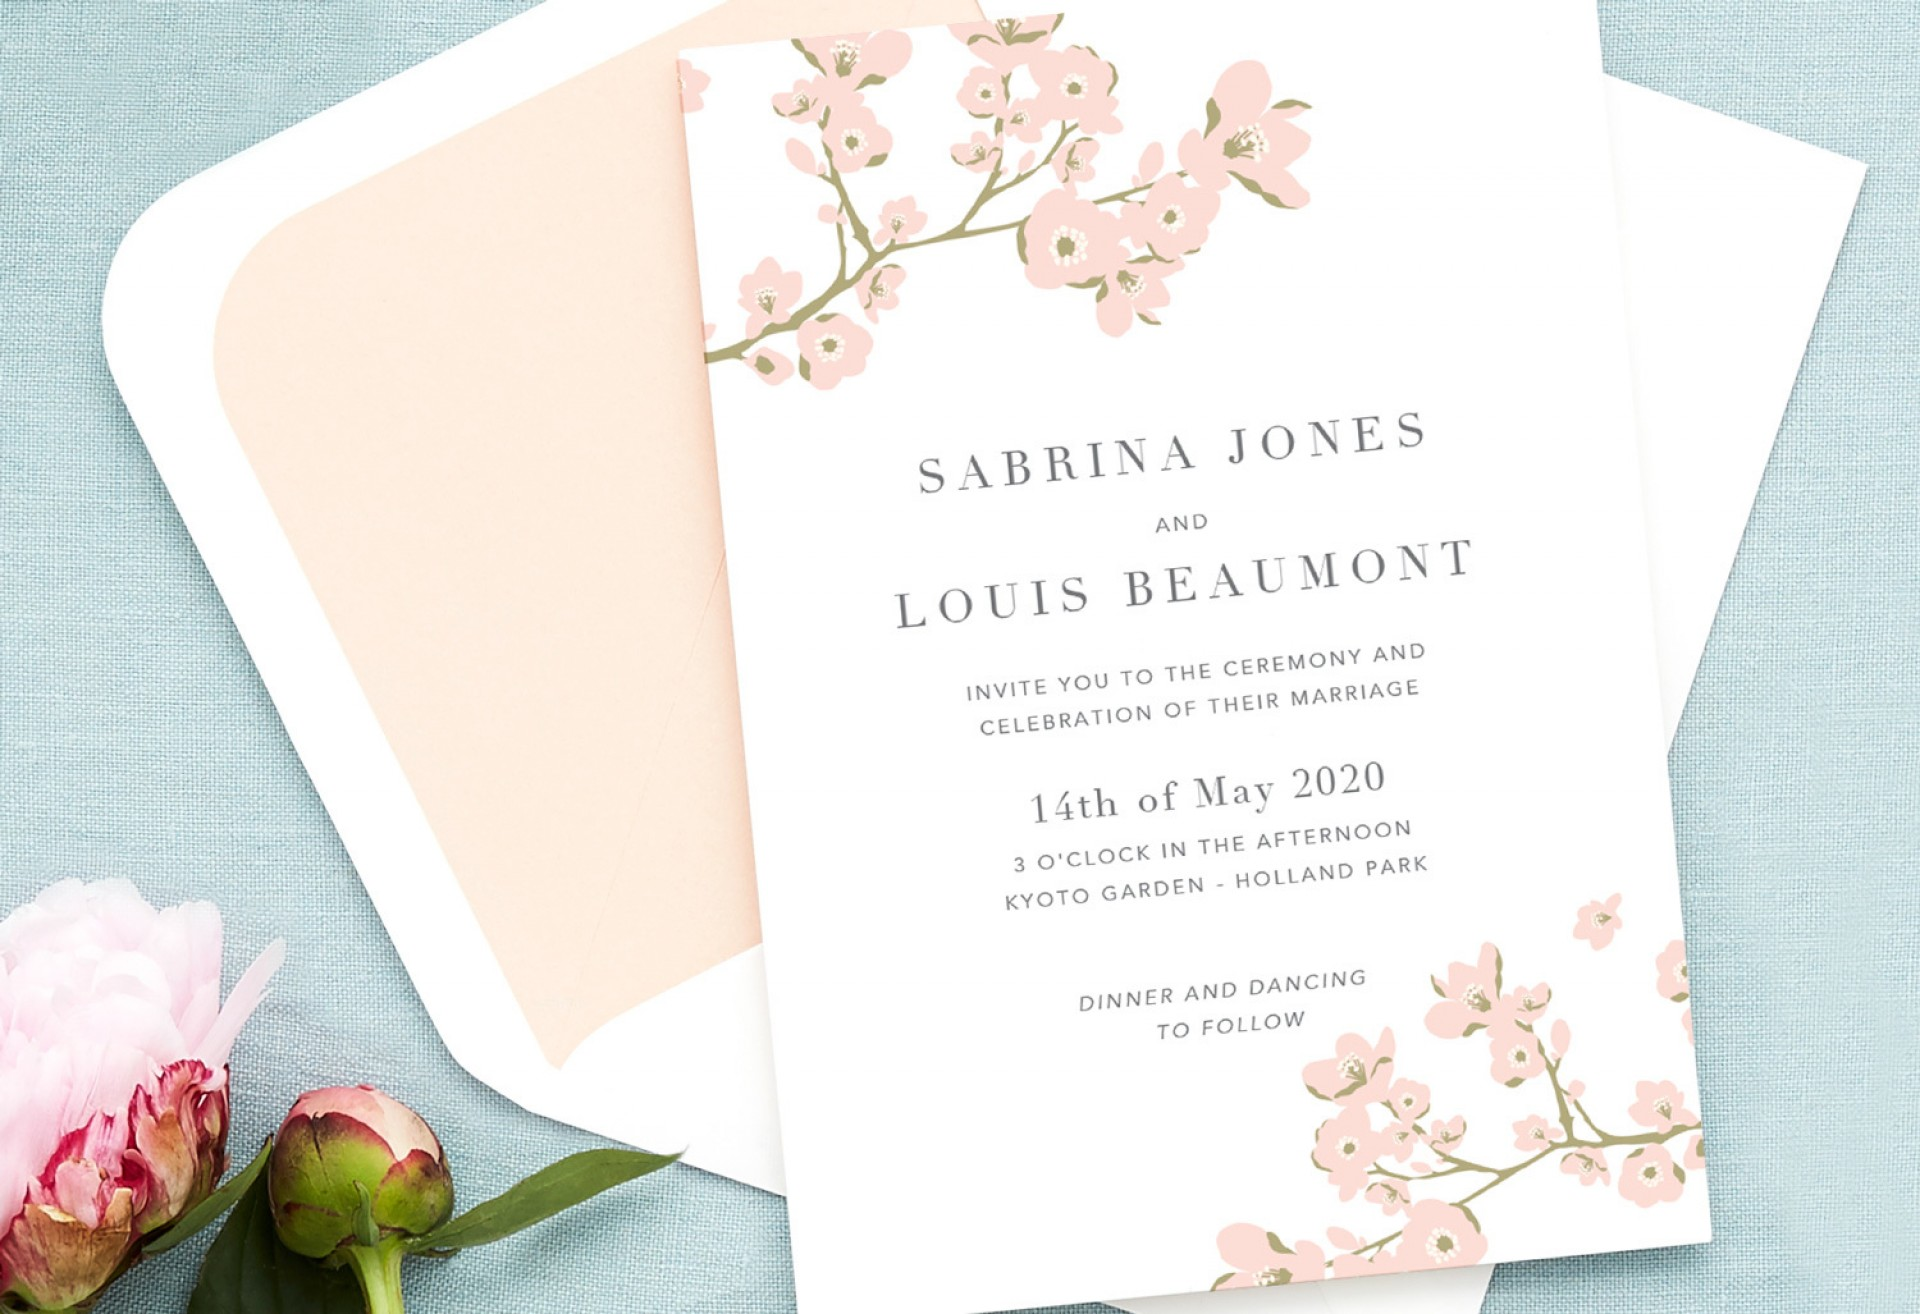 002 Top Wedding Invite Wording Template Inspiration  Templates Chinese Invitation Microsoft Word From Bride And Groom Example Inviting1920